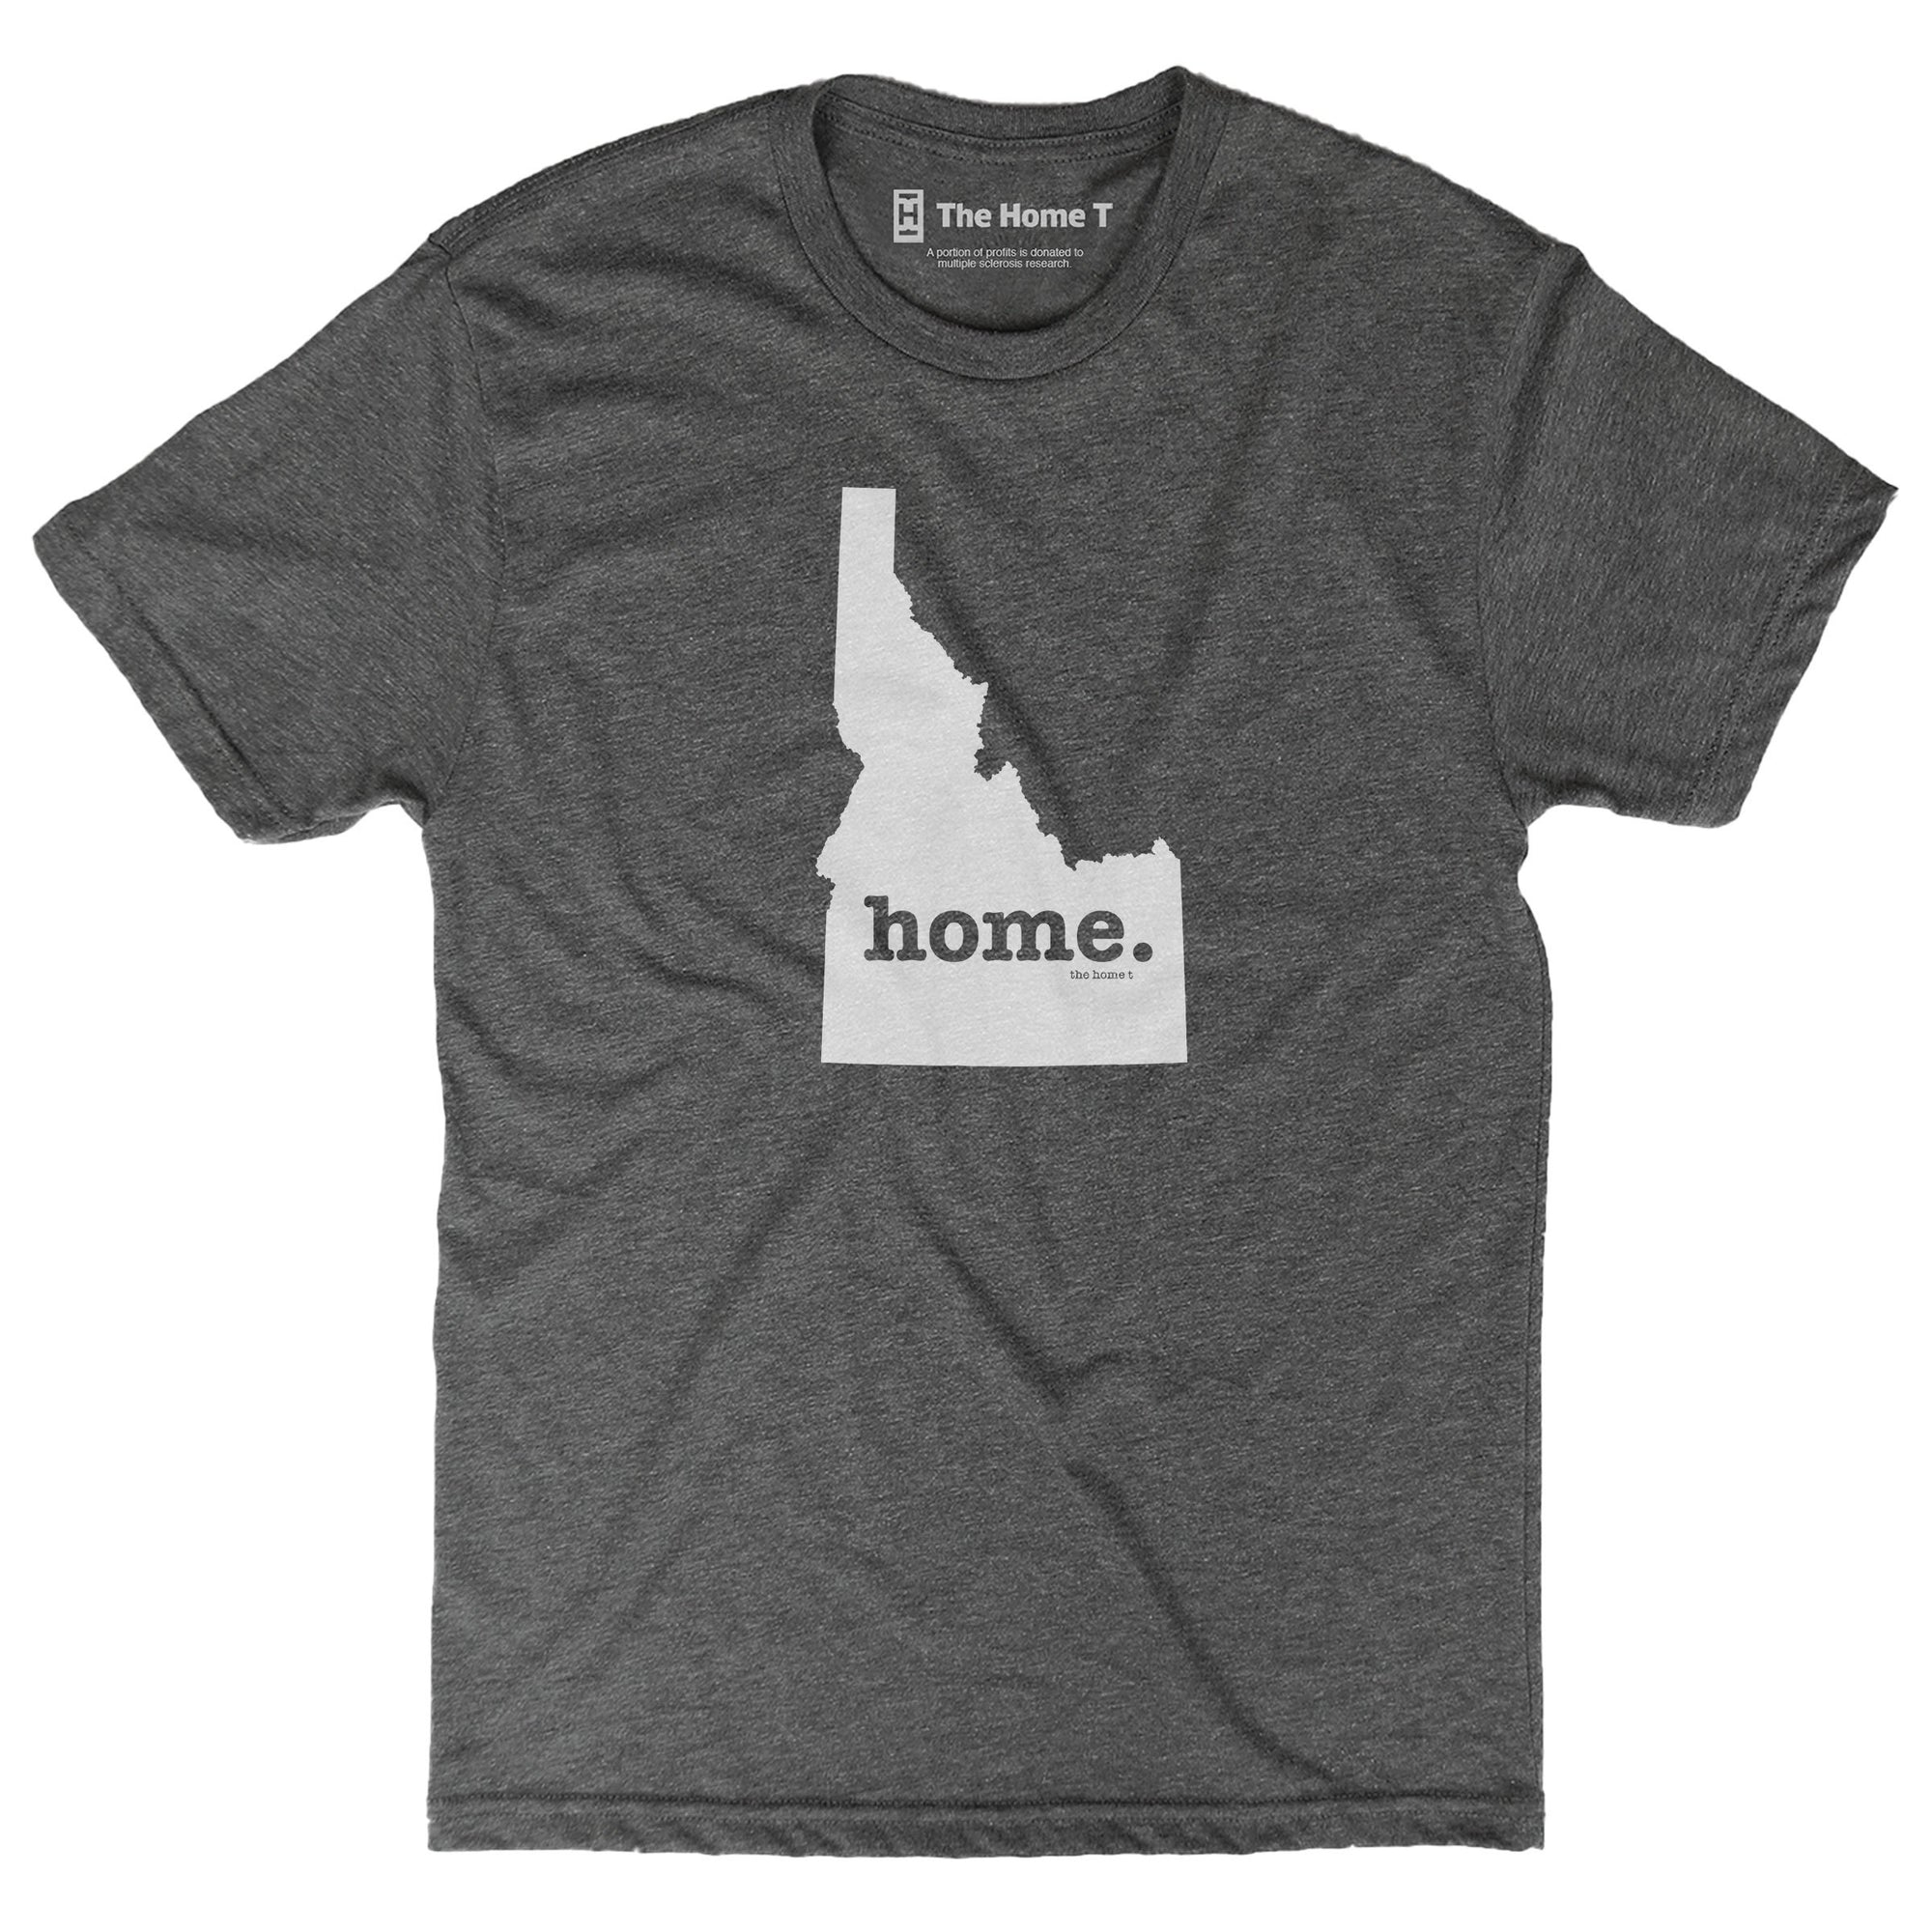 Idaho Home T Original Crew The Home T XXL Grey